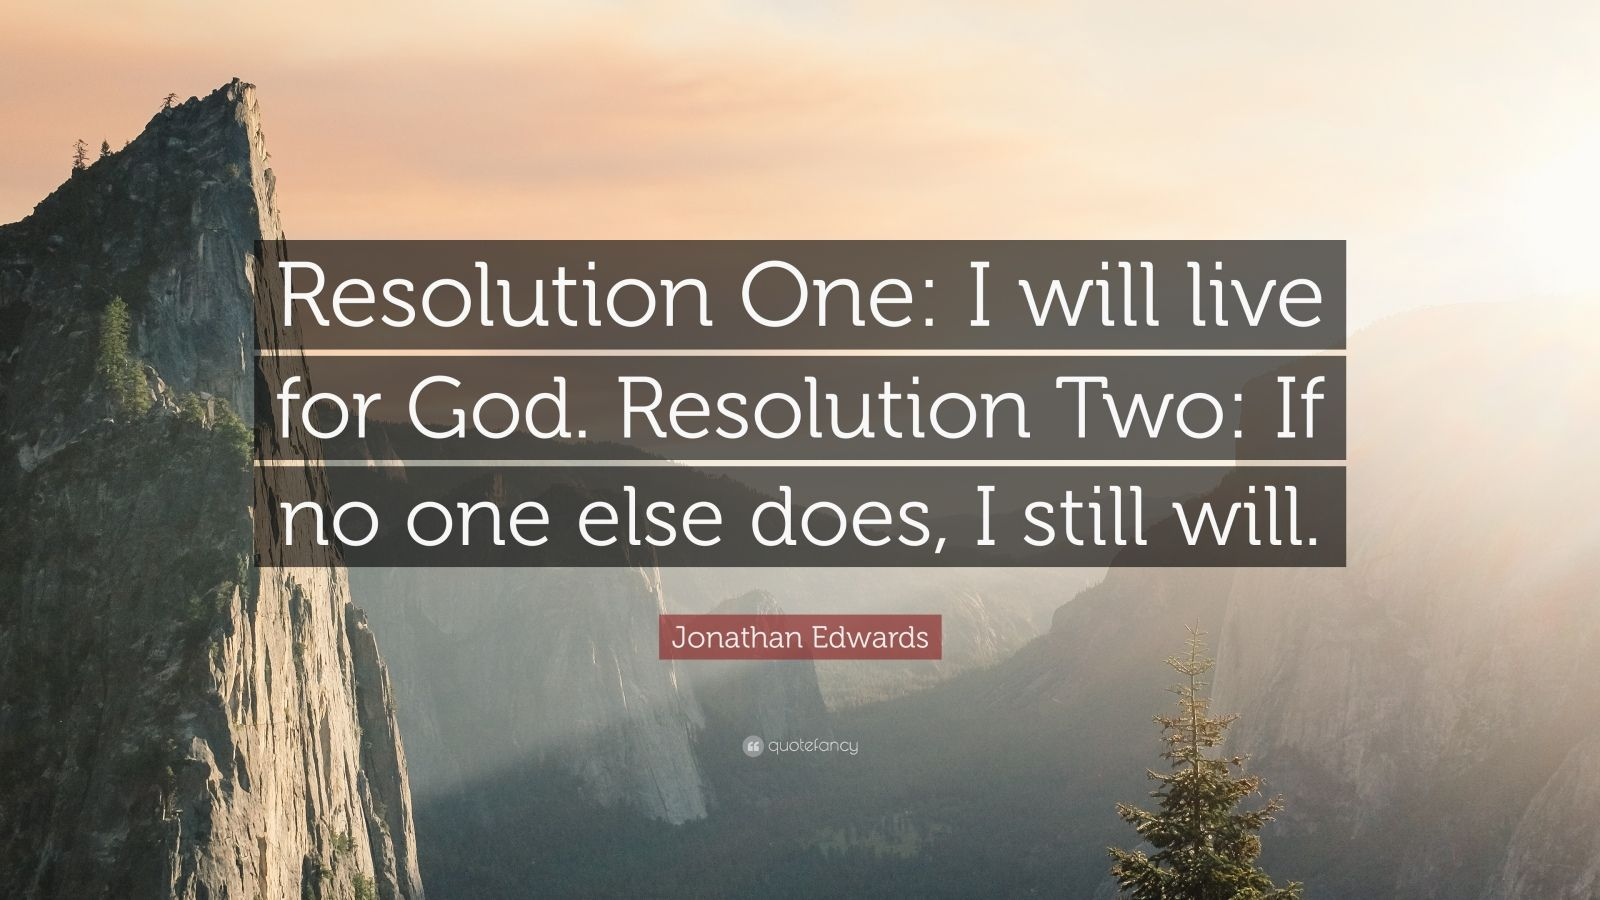 Christian Inspirational Wallpapers With Quotes Jonathan Edwards Quote Resolution One I Will Live For